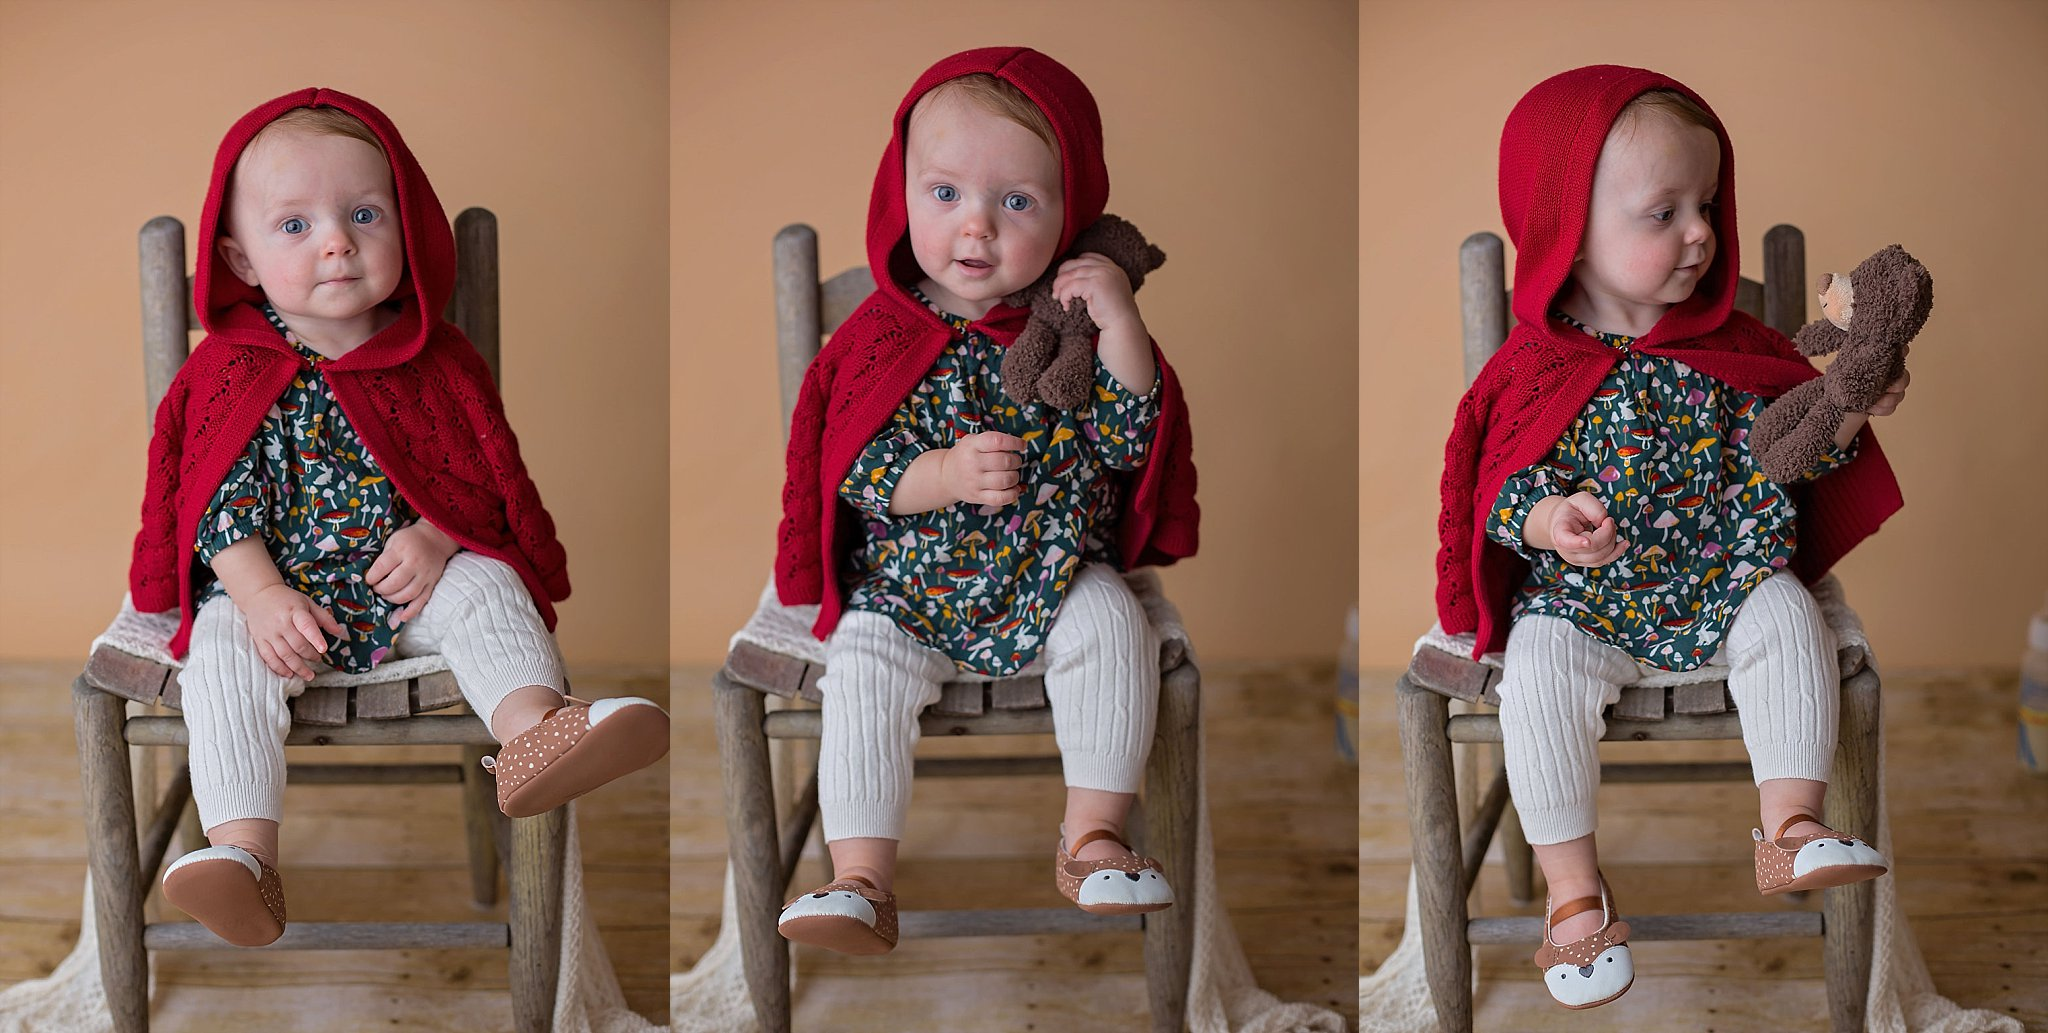 Pinehurst NC baby holds little bear for baby photographer Candace Wolfenbarger in the studio.